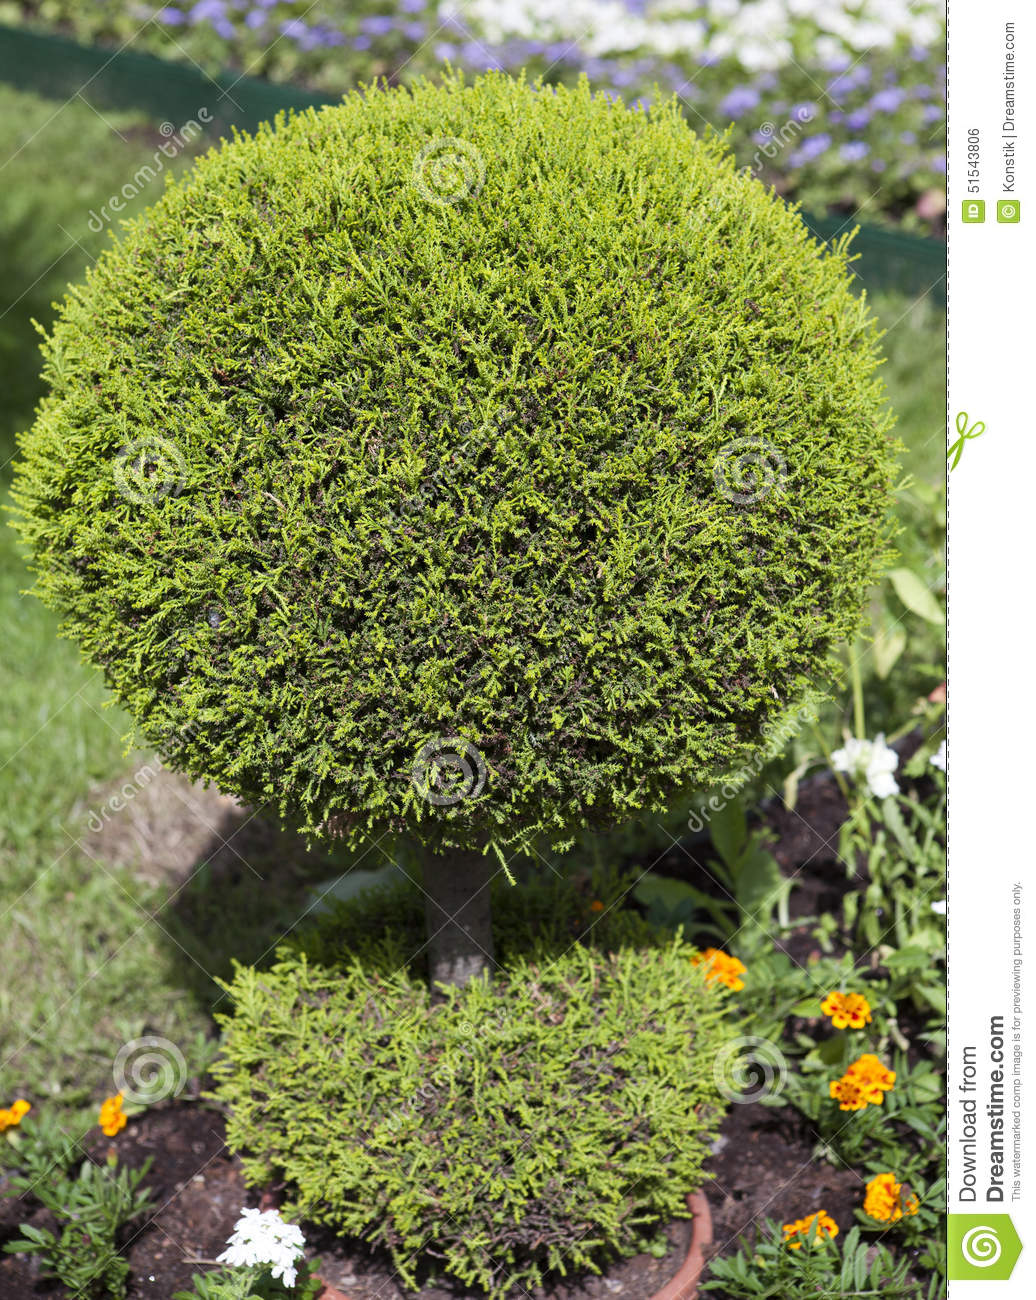 Decorative Green Shrub In Shape Of Ball Stock Photo Image 51543806